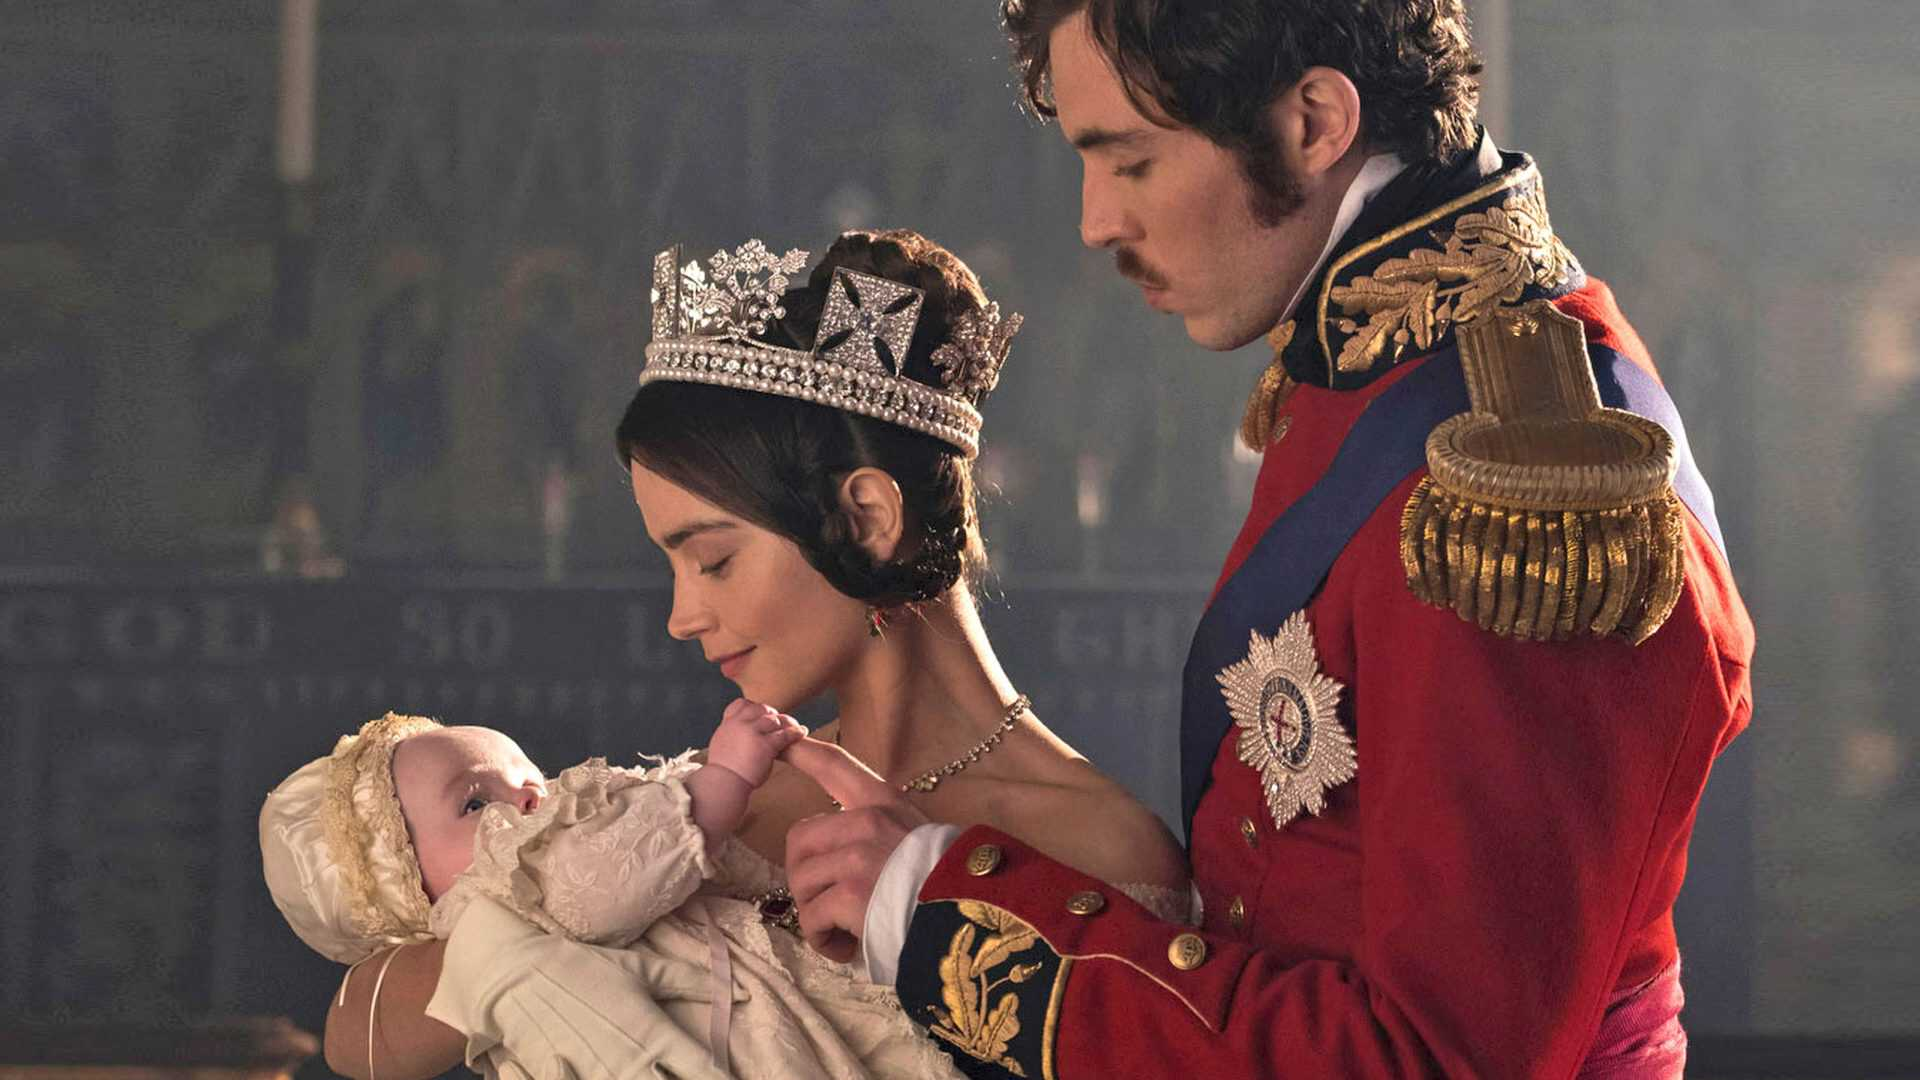 How Accurate is PBS Victoria Starring Jenna Coleman